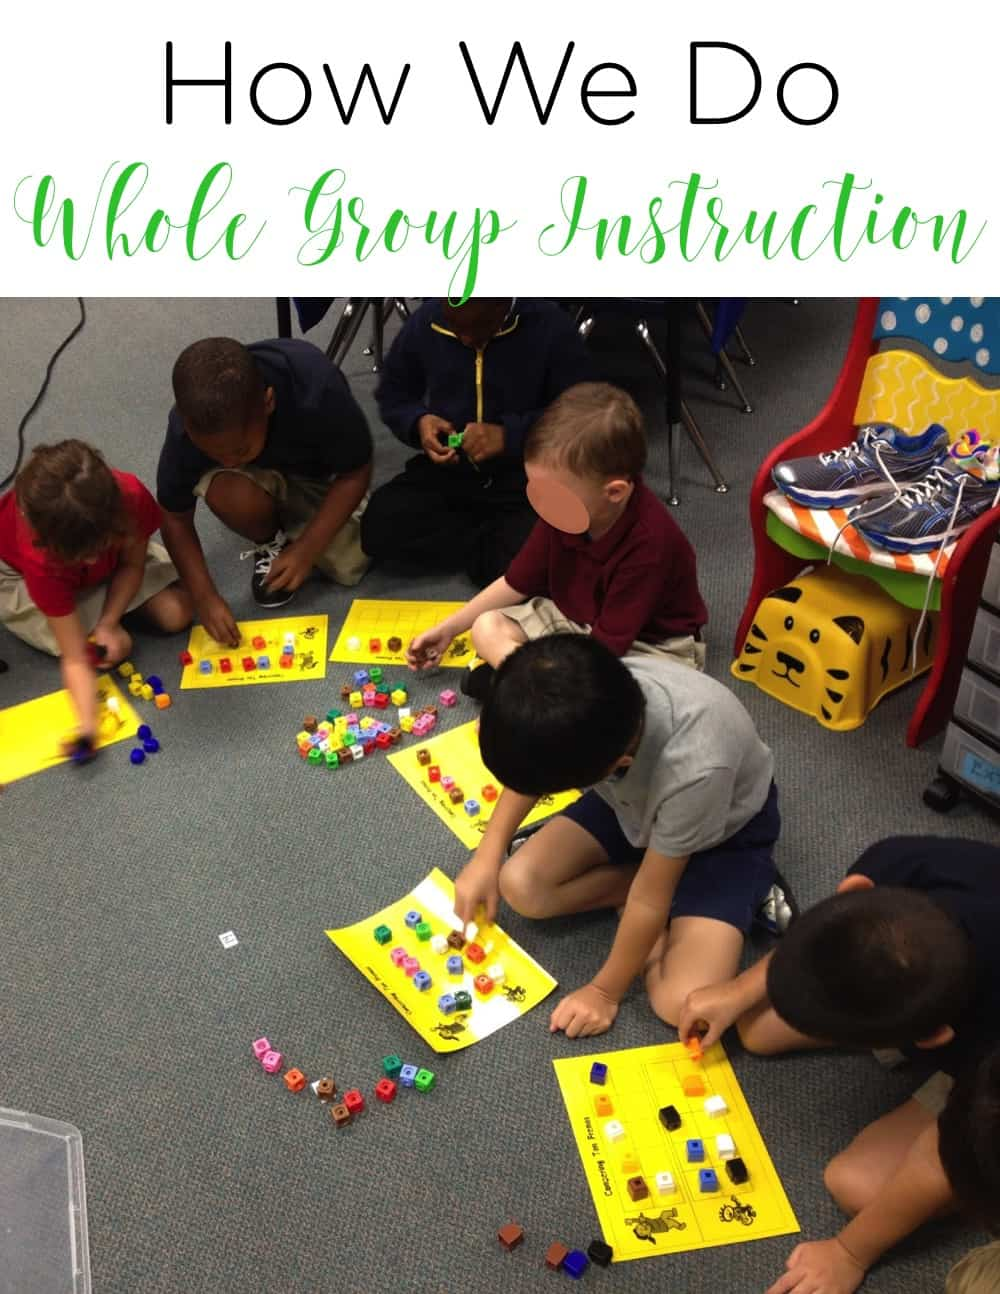 Whole group instruction is a part of every classroom. See how this teacher organizes that time and engages her students.